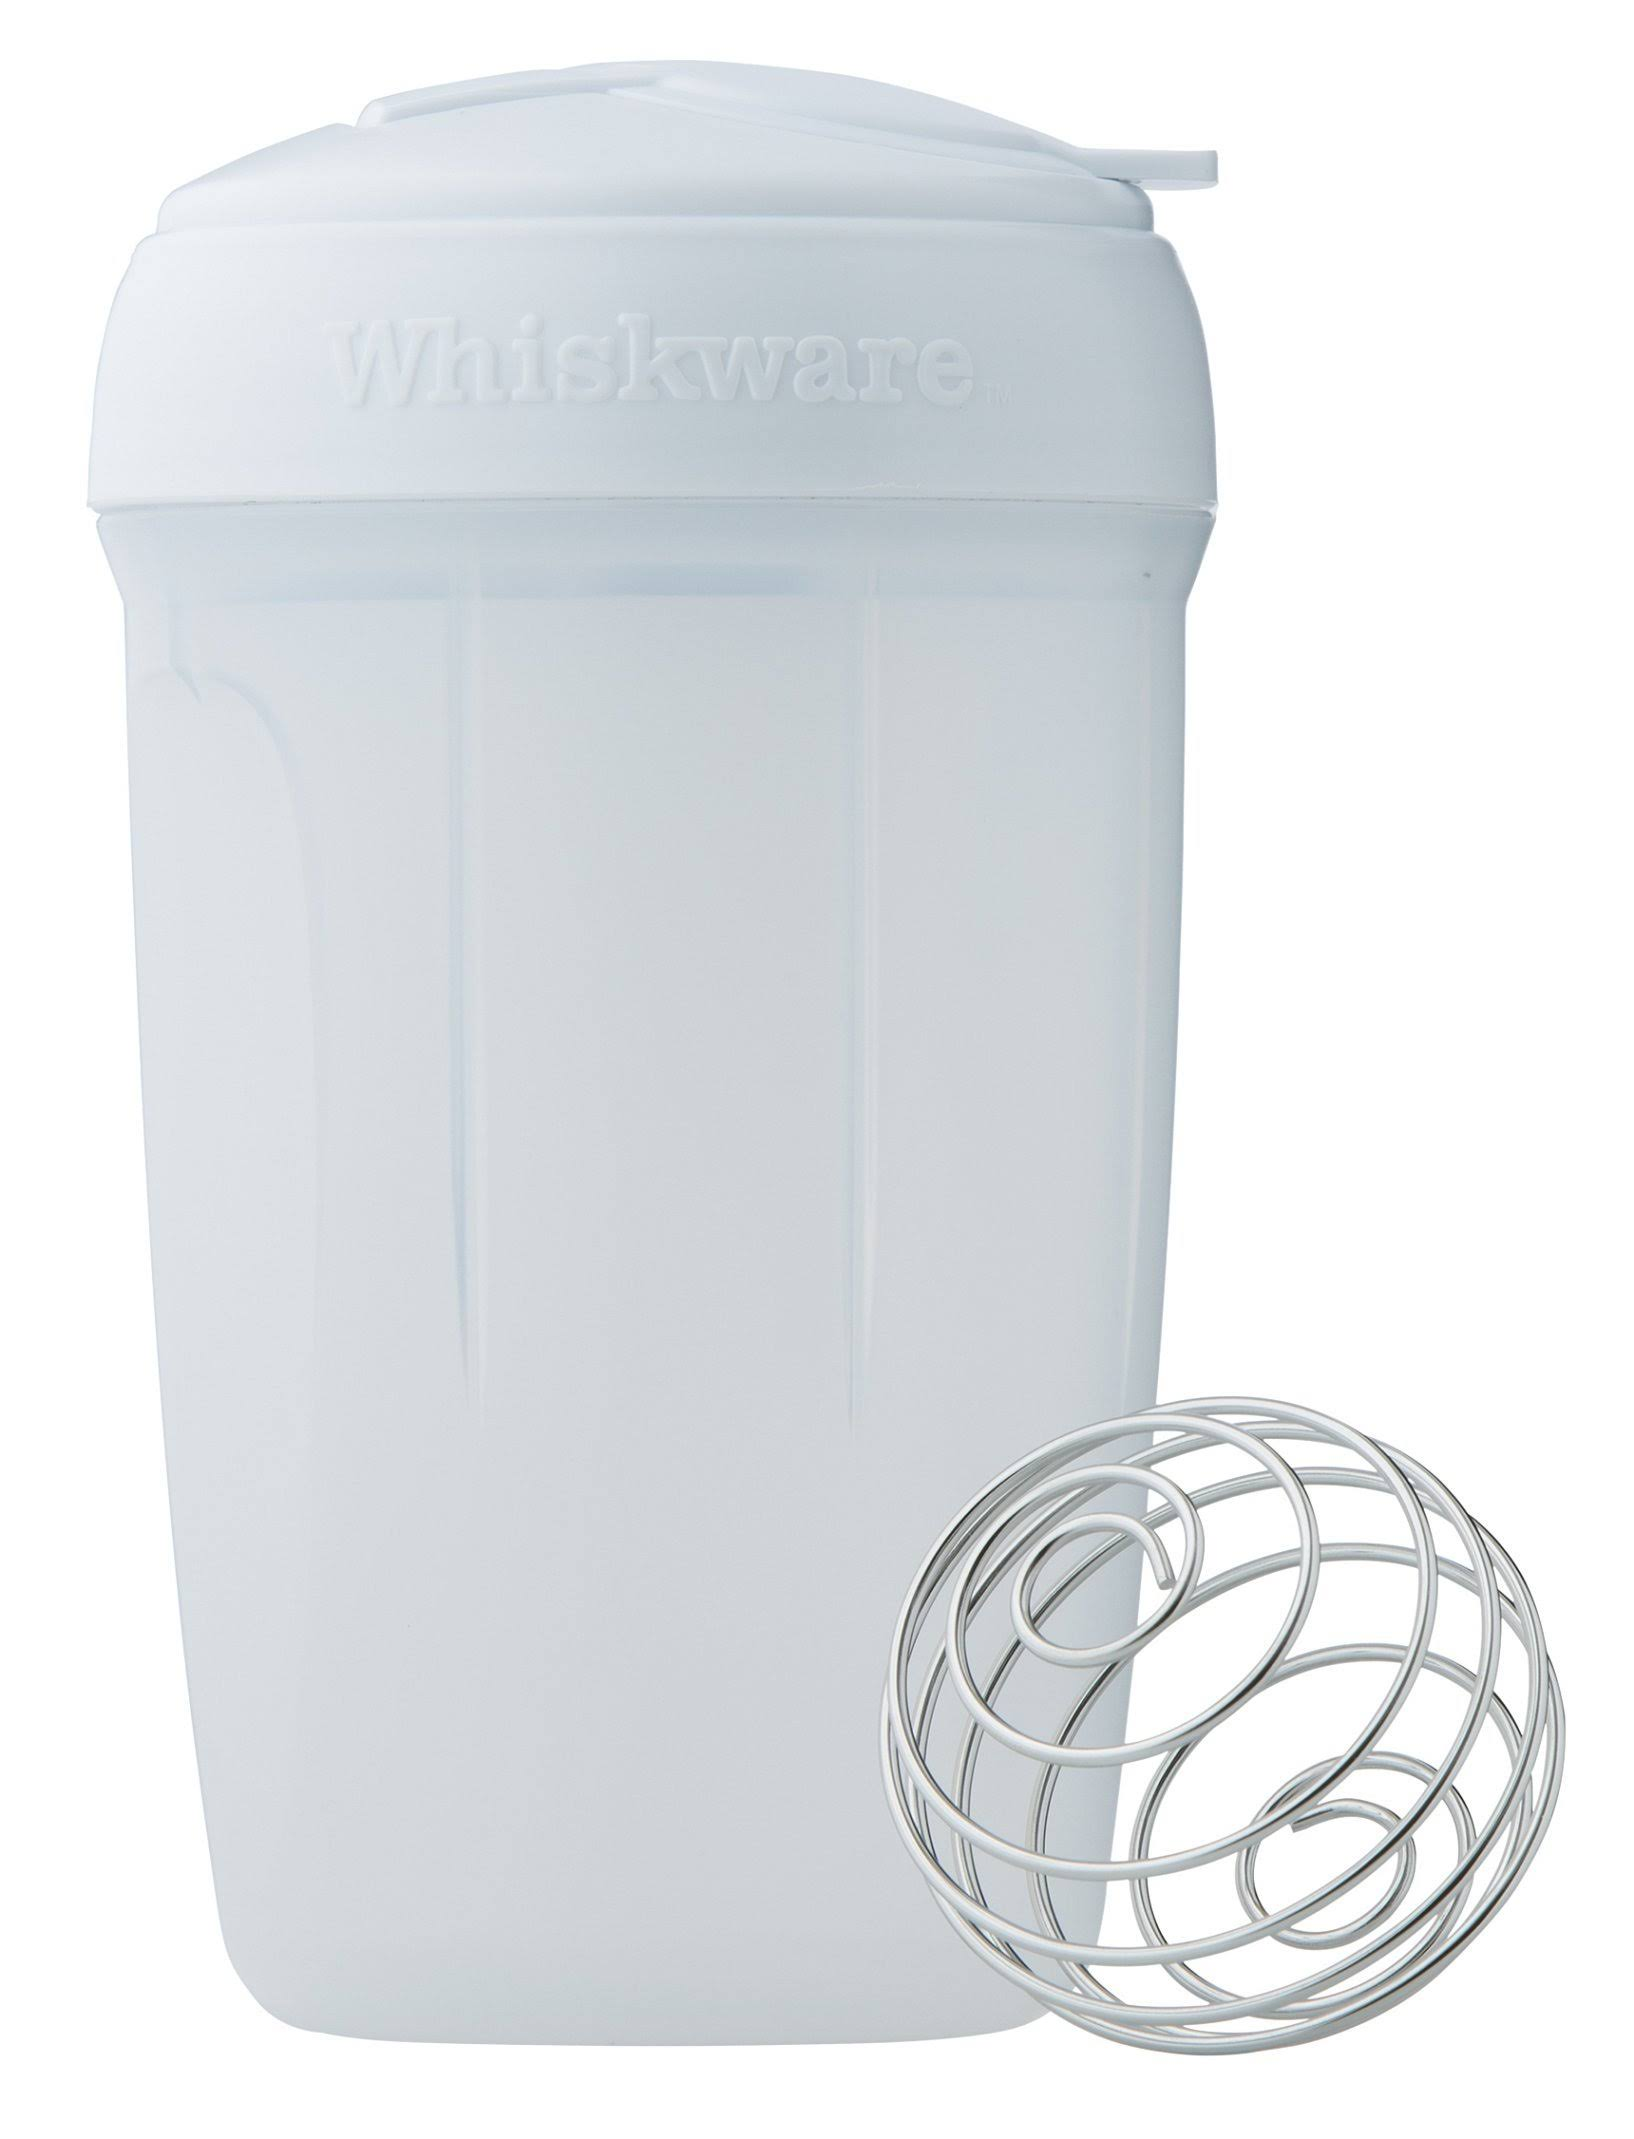 Whiskware Egg Mixer - with Blenderball Wire Whisk, White